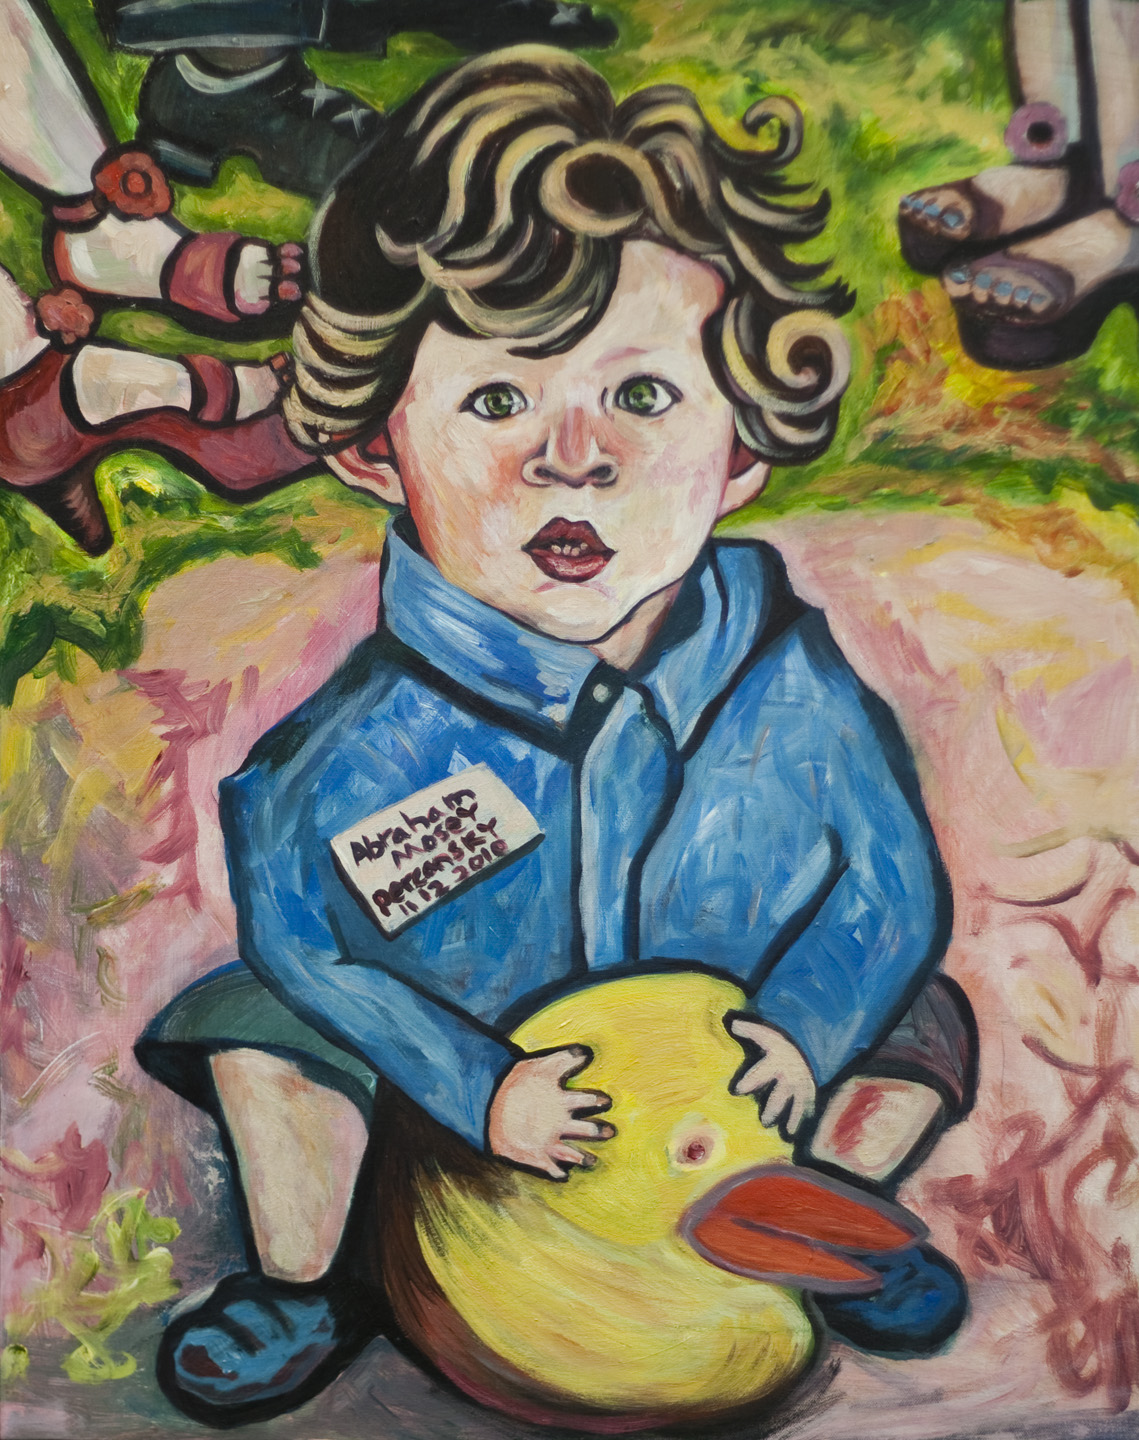 Abraham Percansky / November 12, 2010 / 24 x 30 Acrylic Painting on Canvas by Gretchen Seichrist